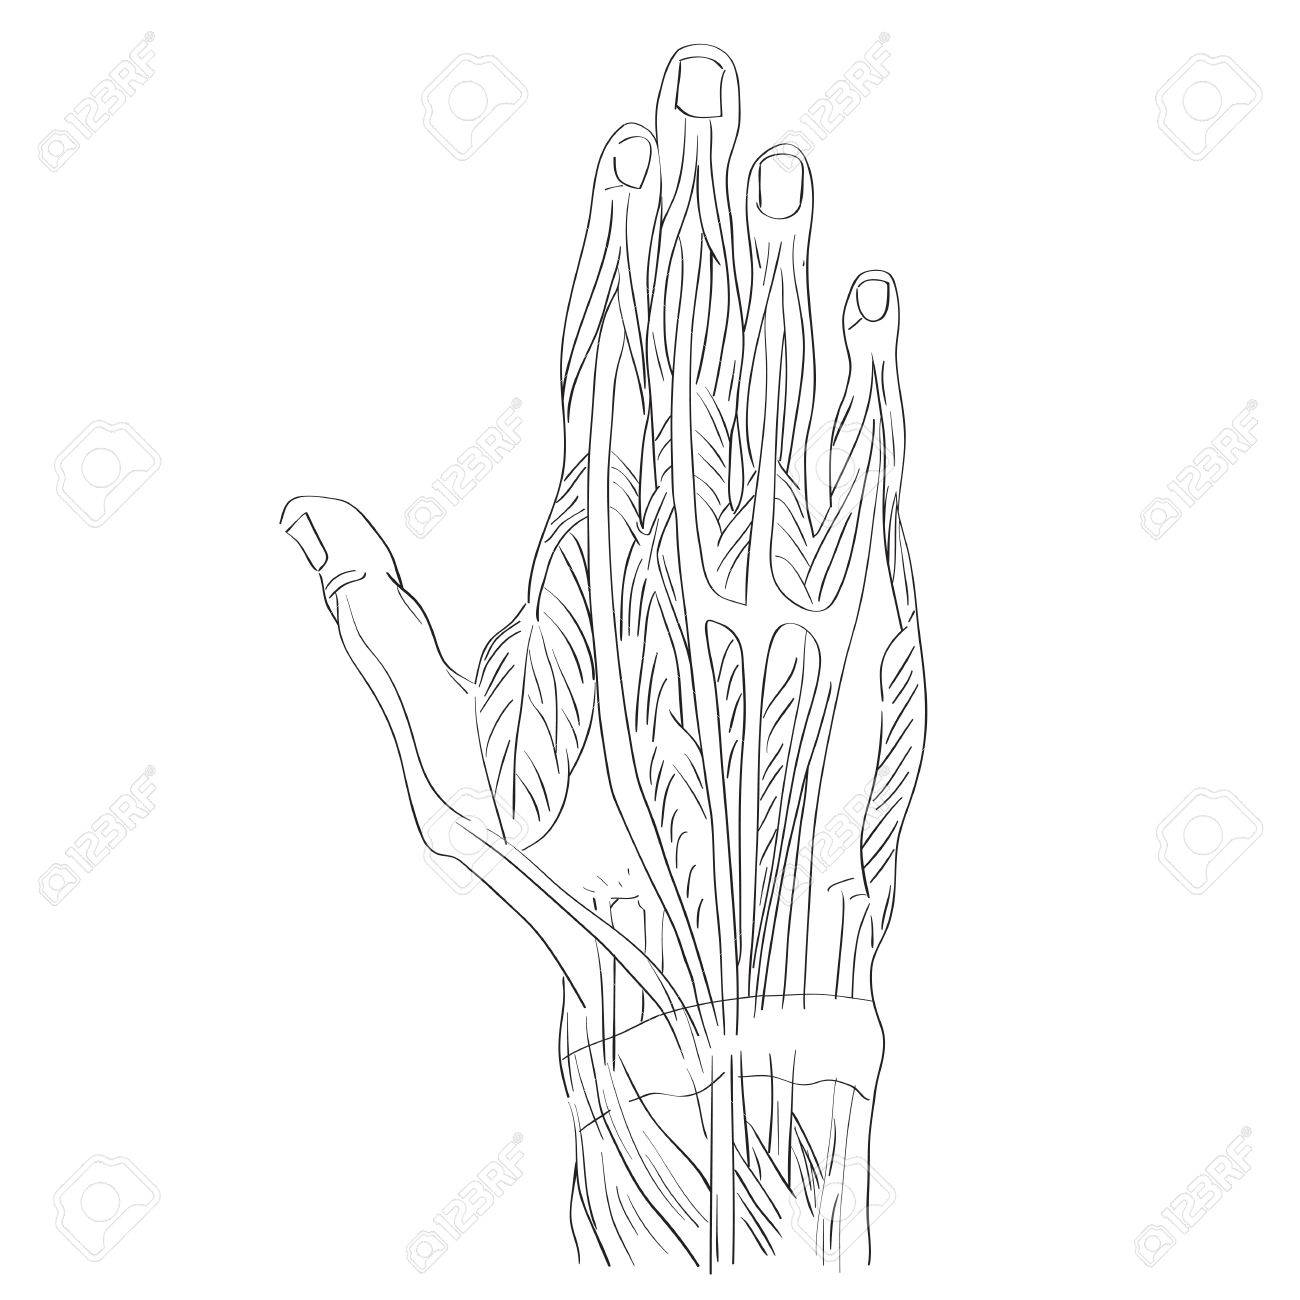 Sketch Illustration Of The Hand Muscles Isolated On White, Artistic ...